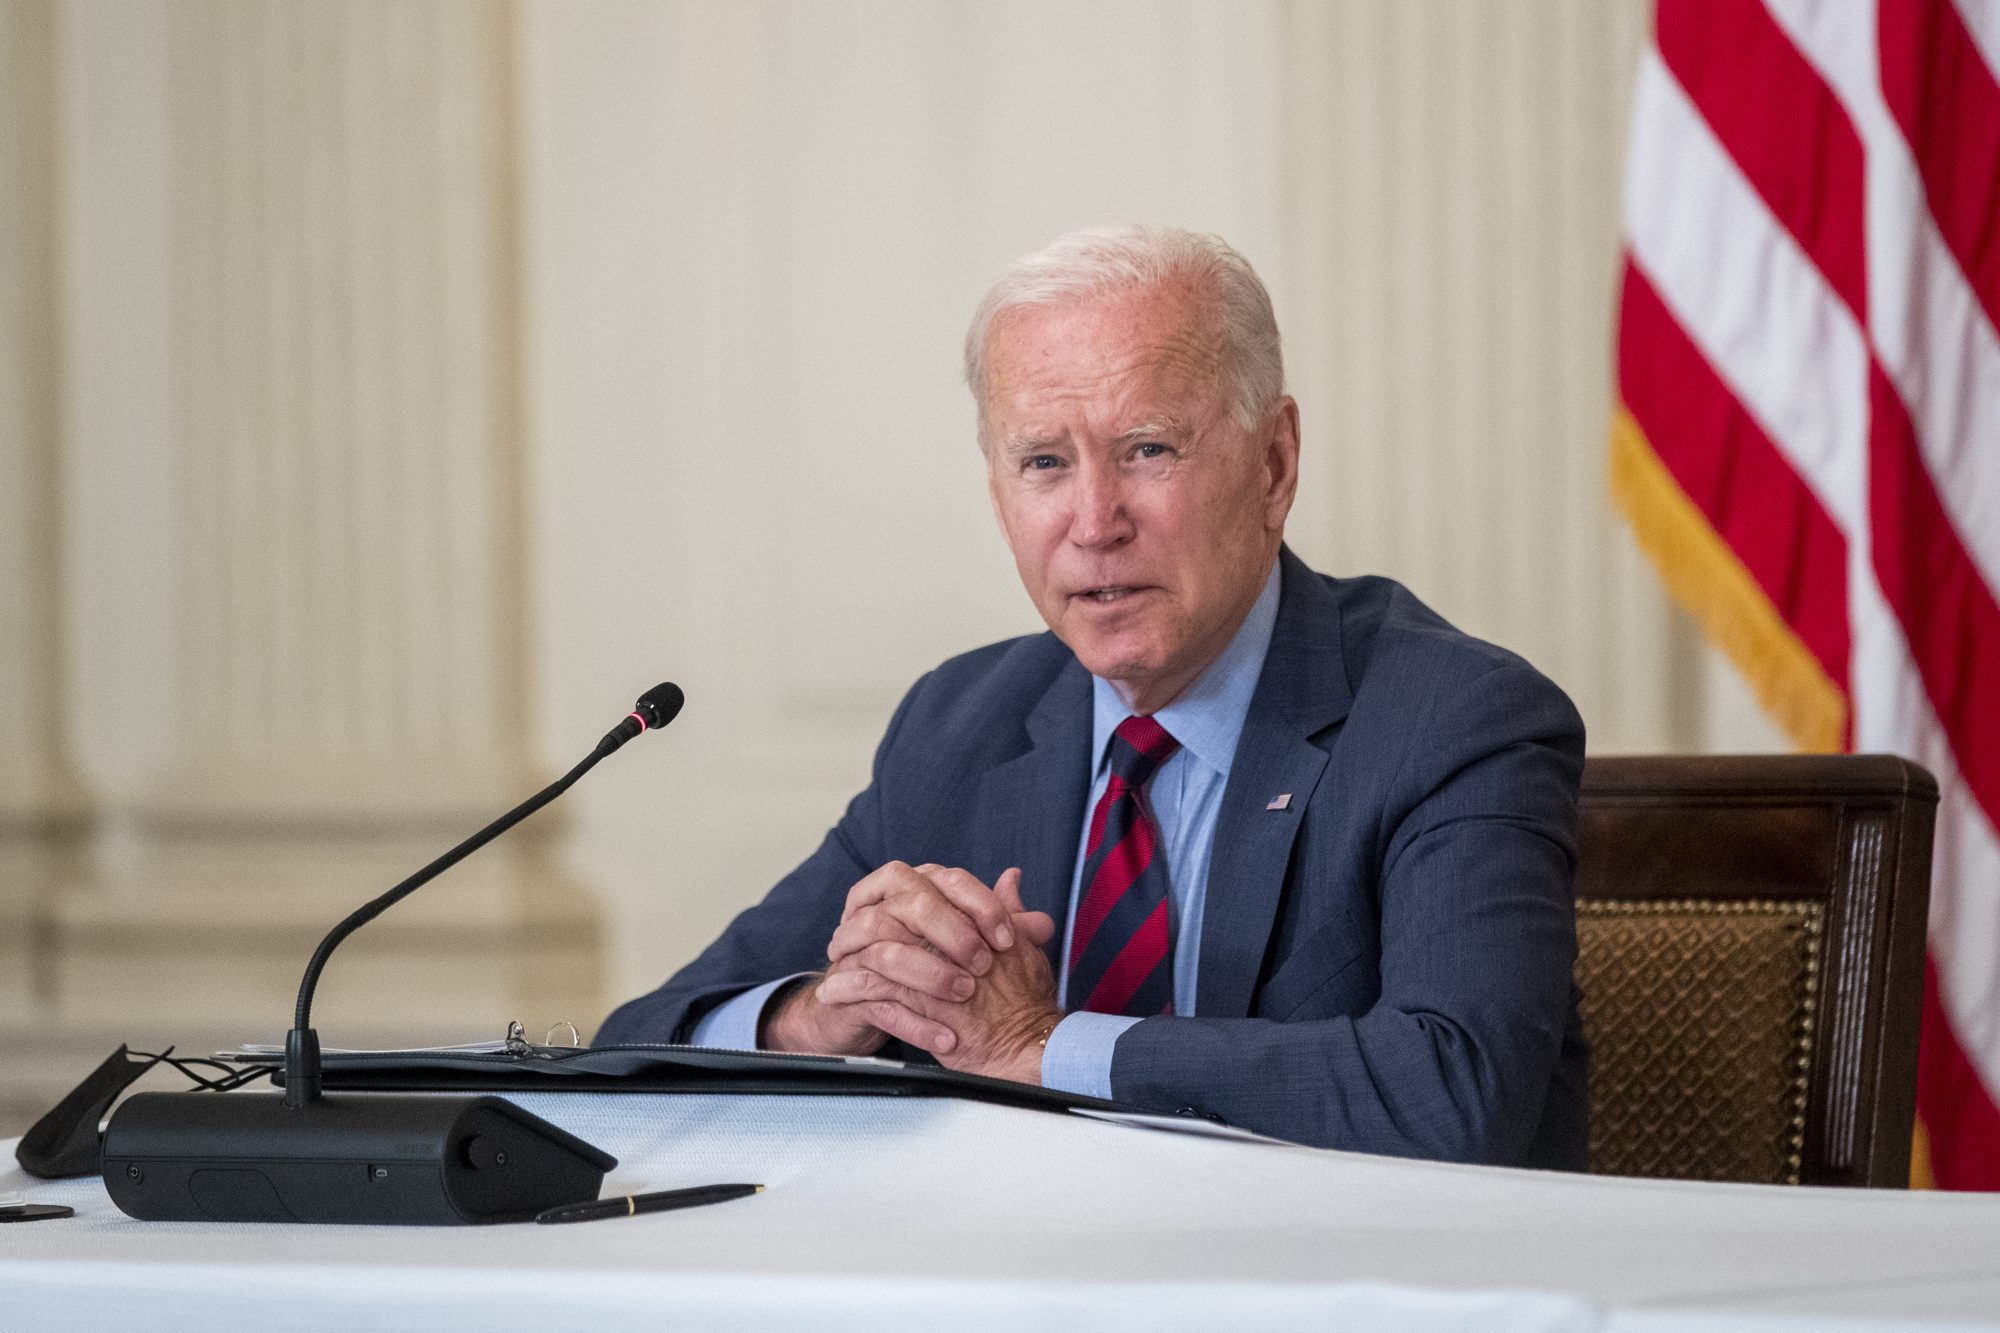 President Biden Meets With Latino Community Leaders